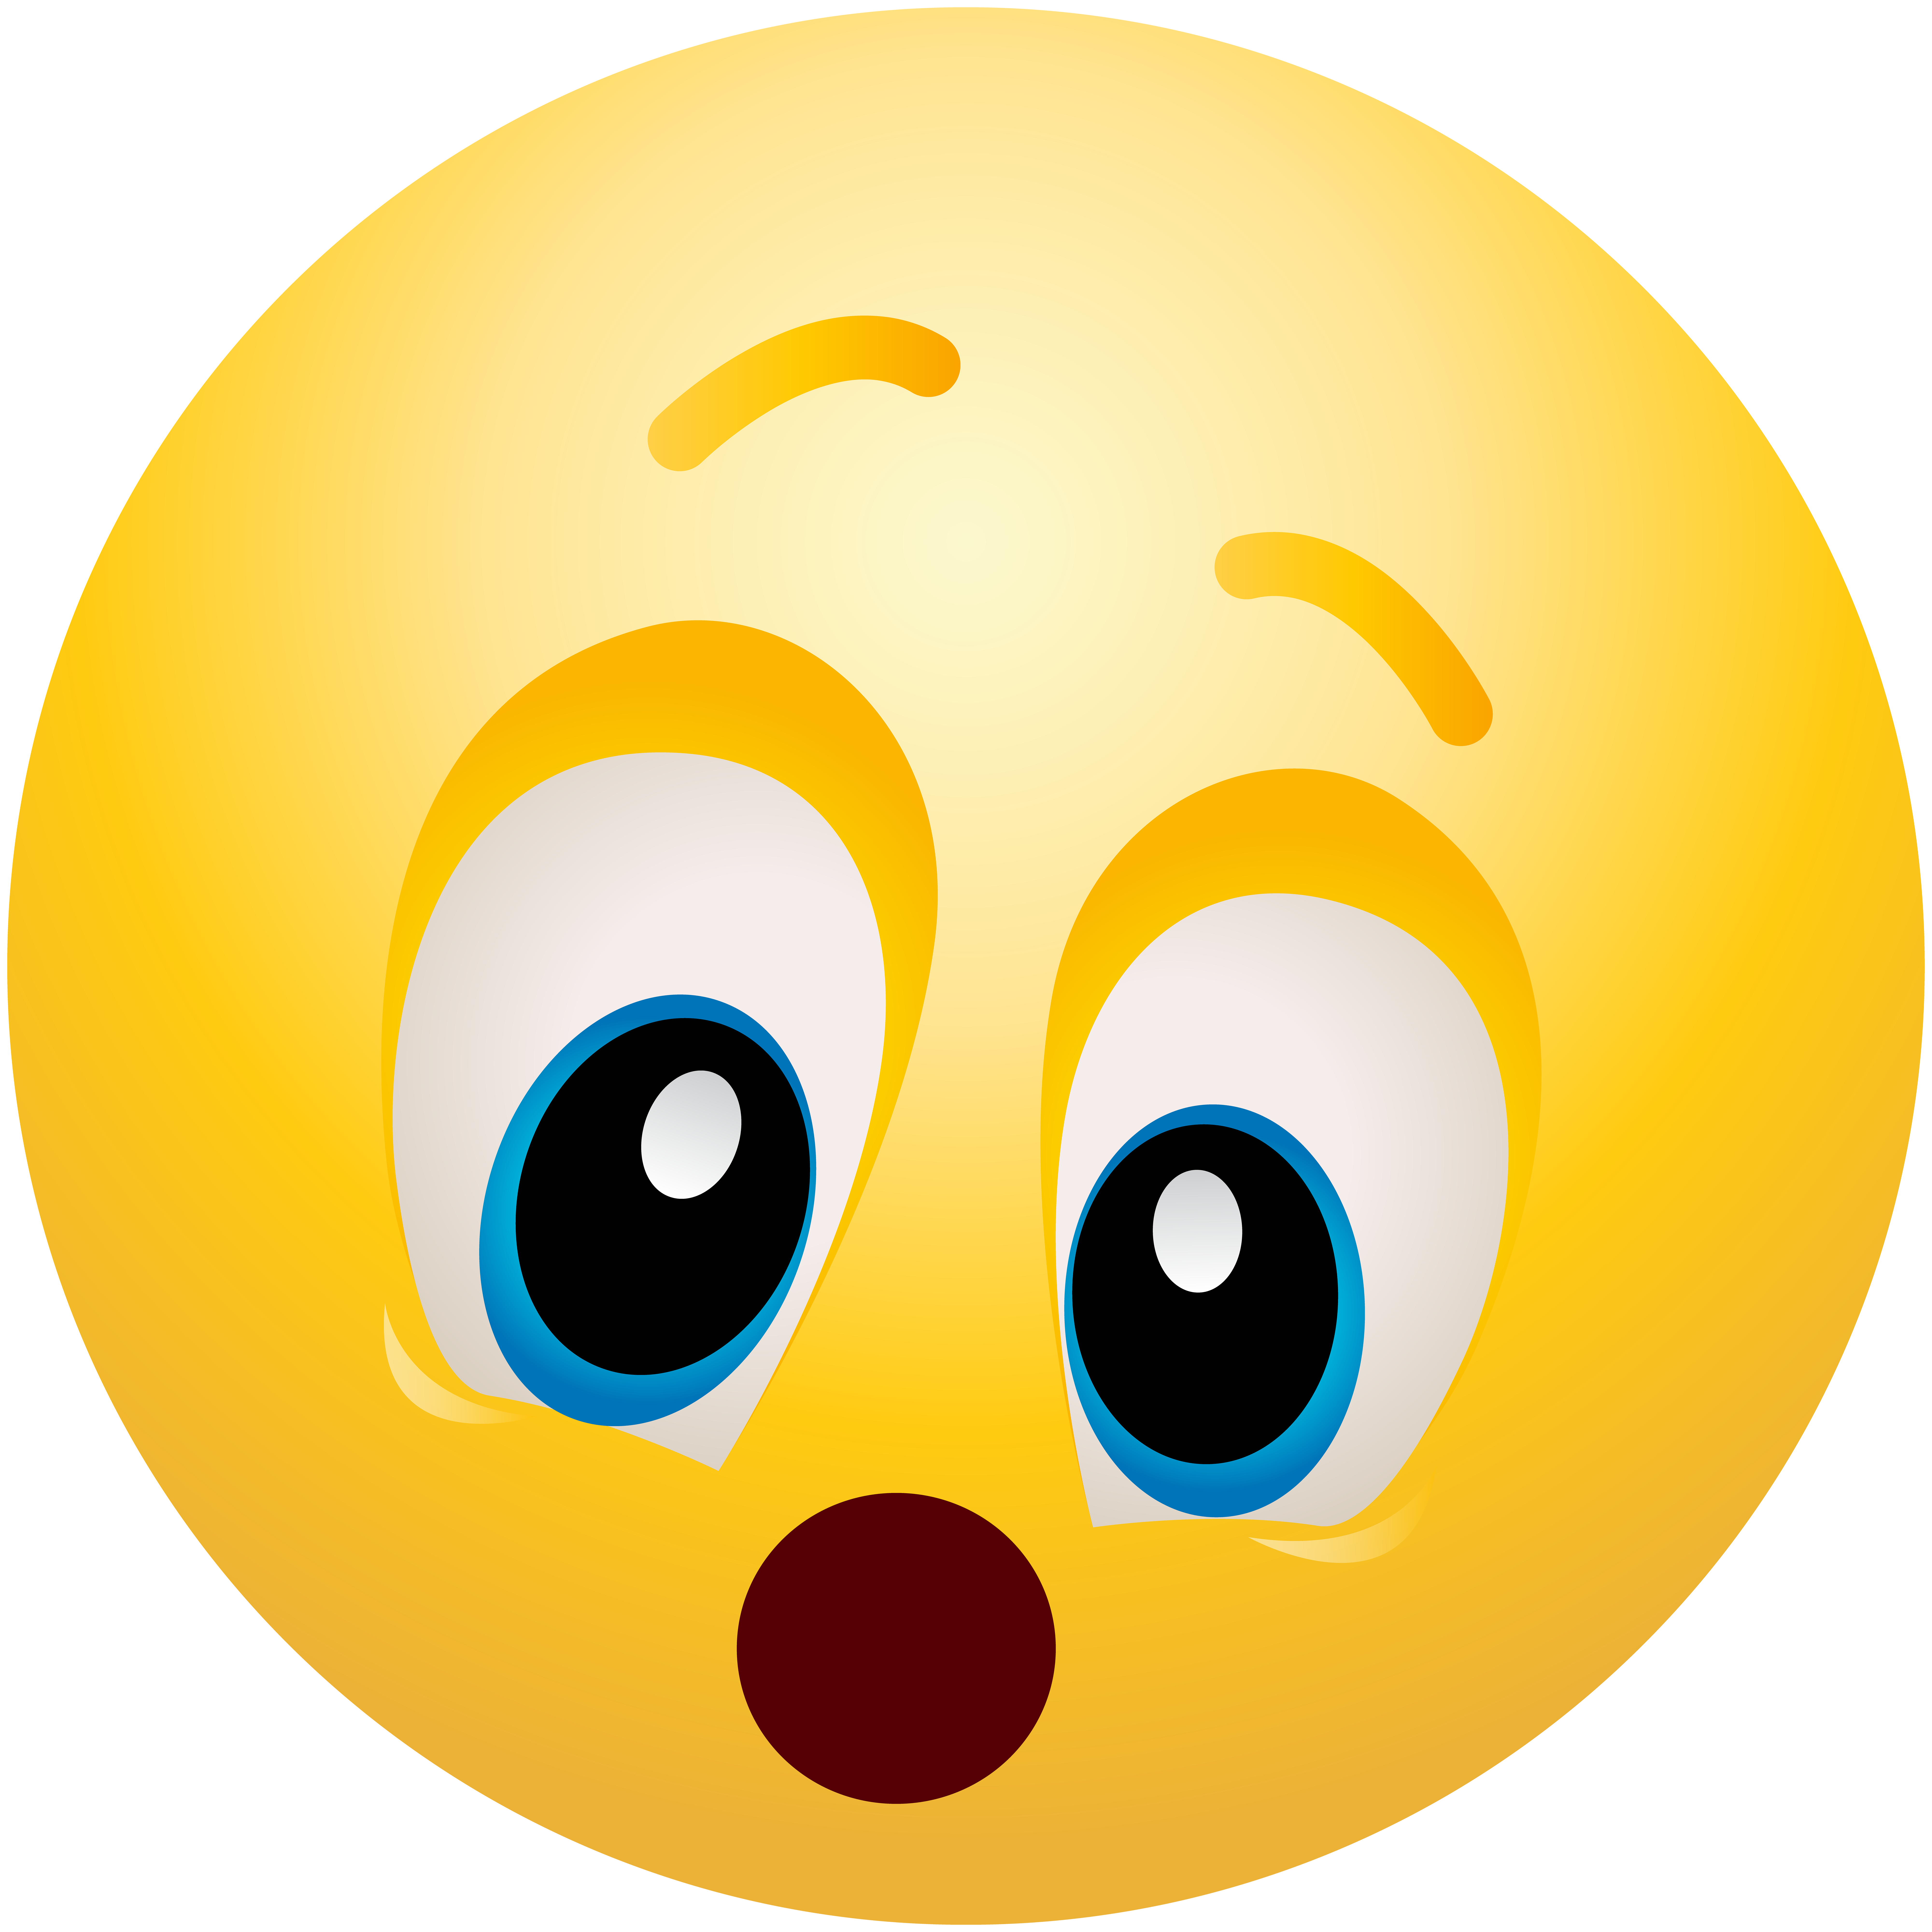 Planets clipart smiley. Amazed emoticon png clip